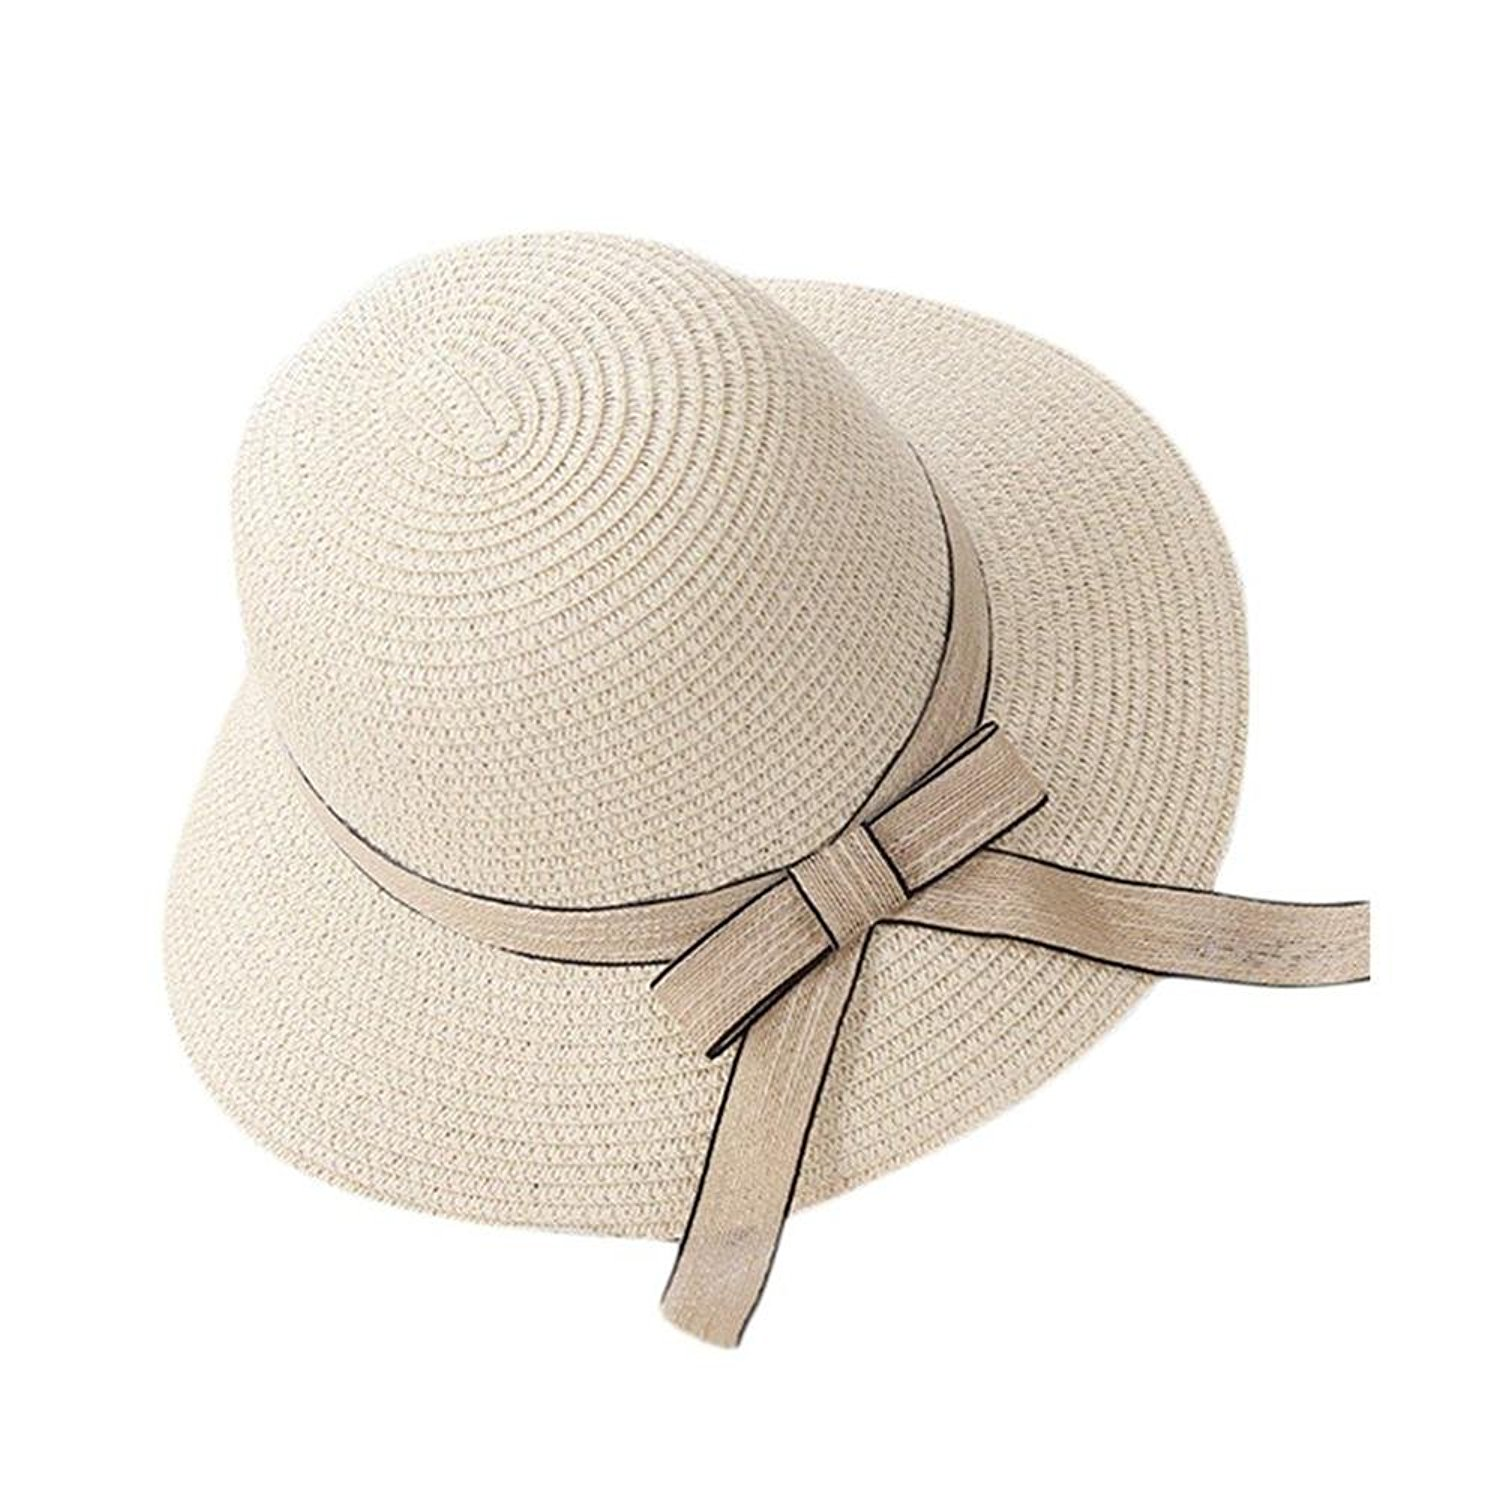 d47561c5 Get Quotations · Aabigale beautiful NEW Summer Autumn Vacation Travel  All-Match Women Straw Hat Fisherman Hat Outdoor